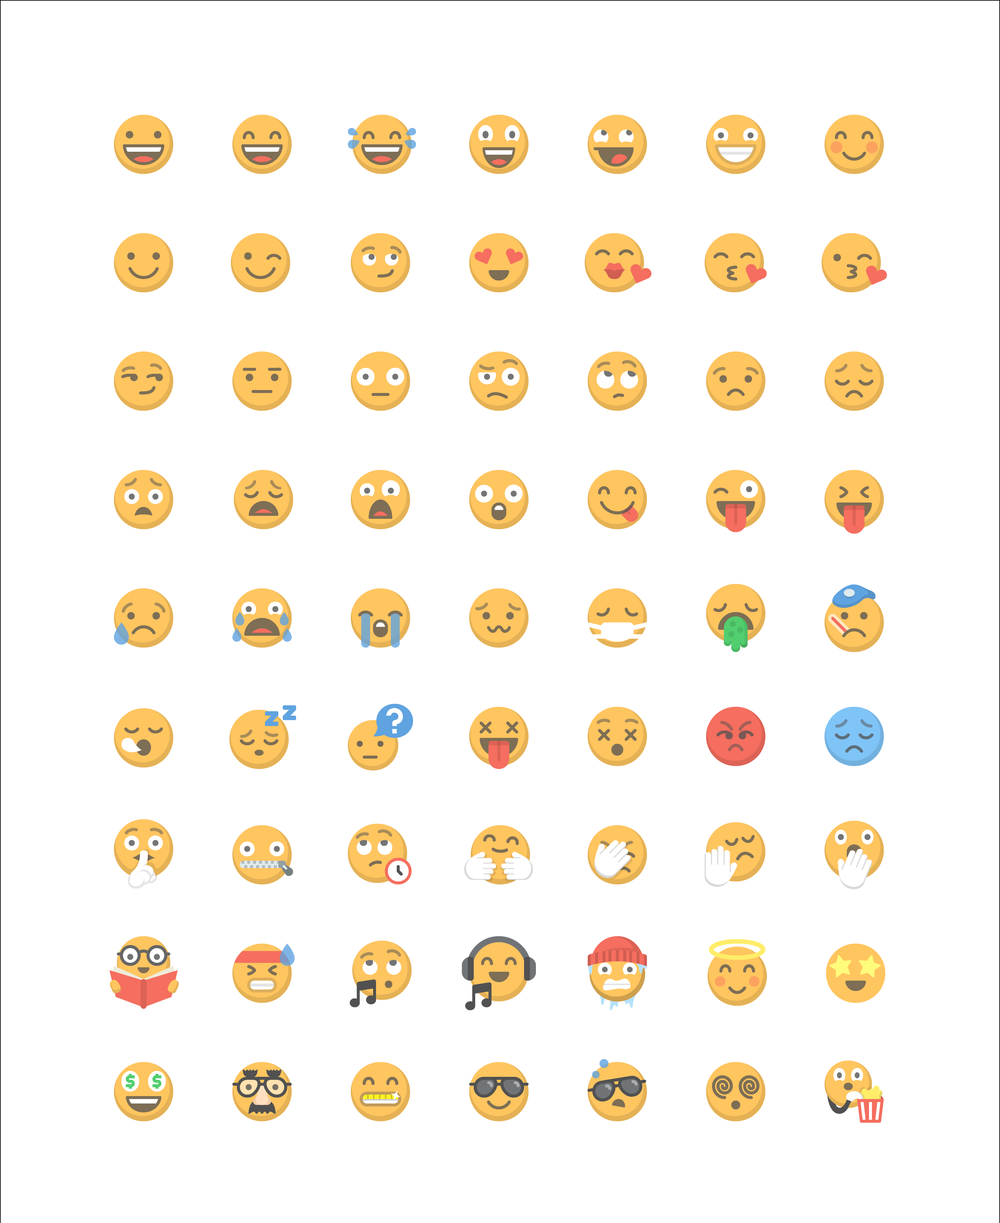 Emotions@2x.png